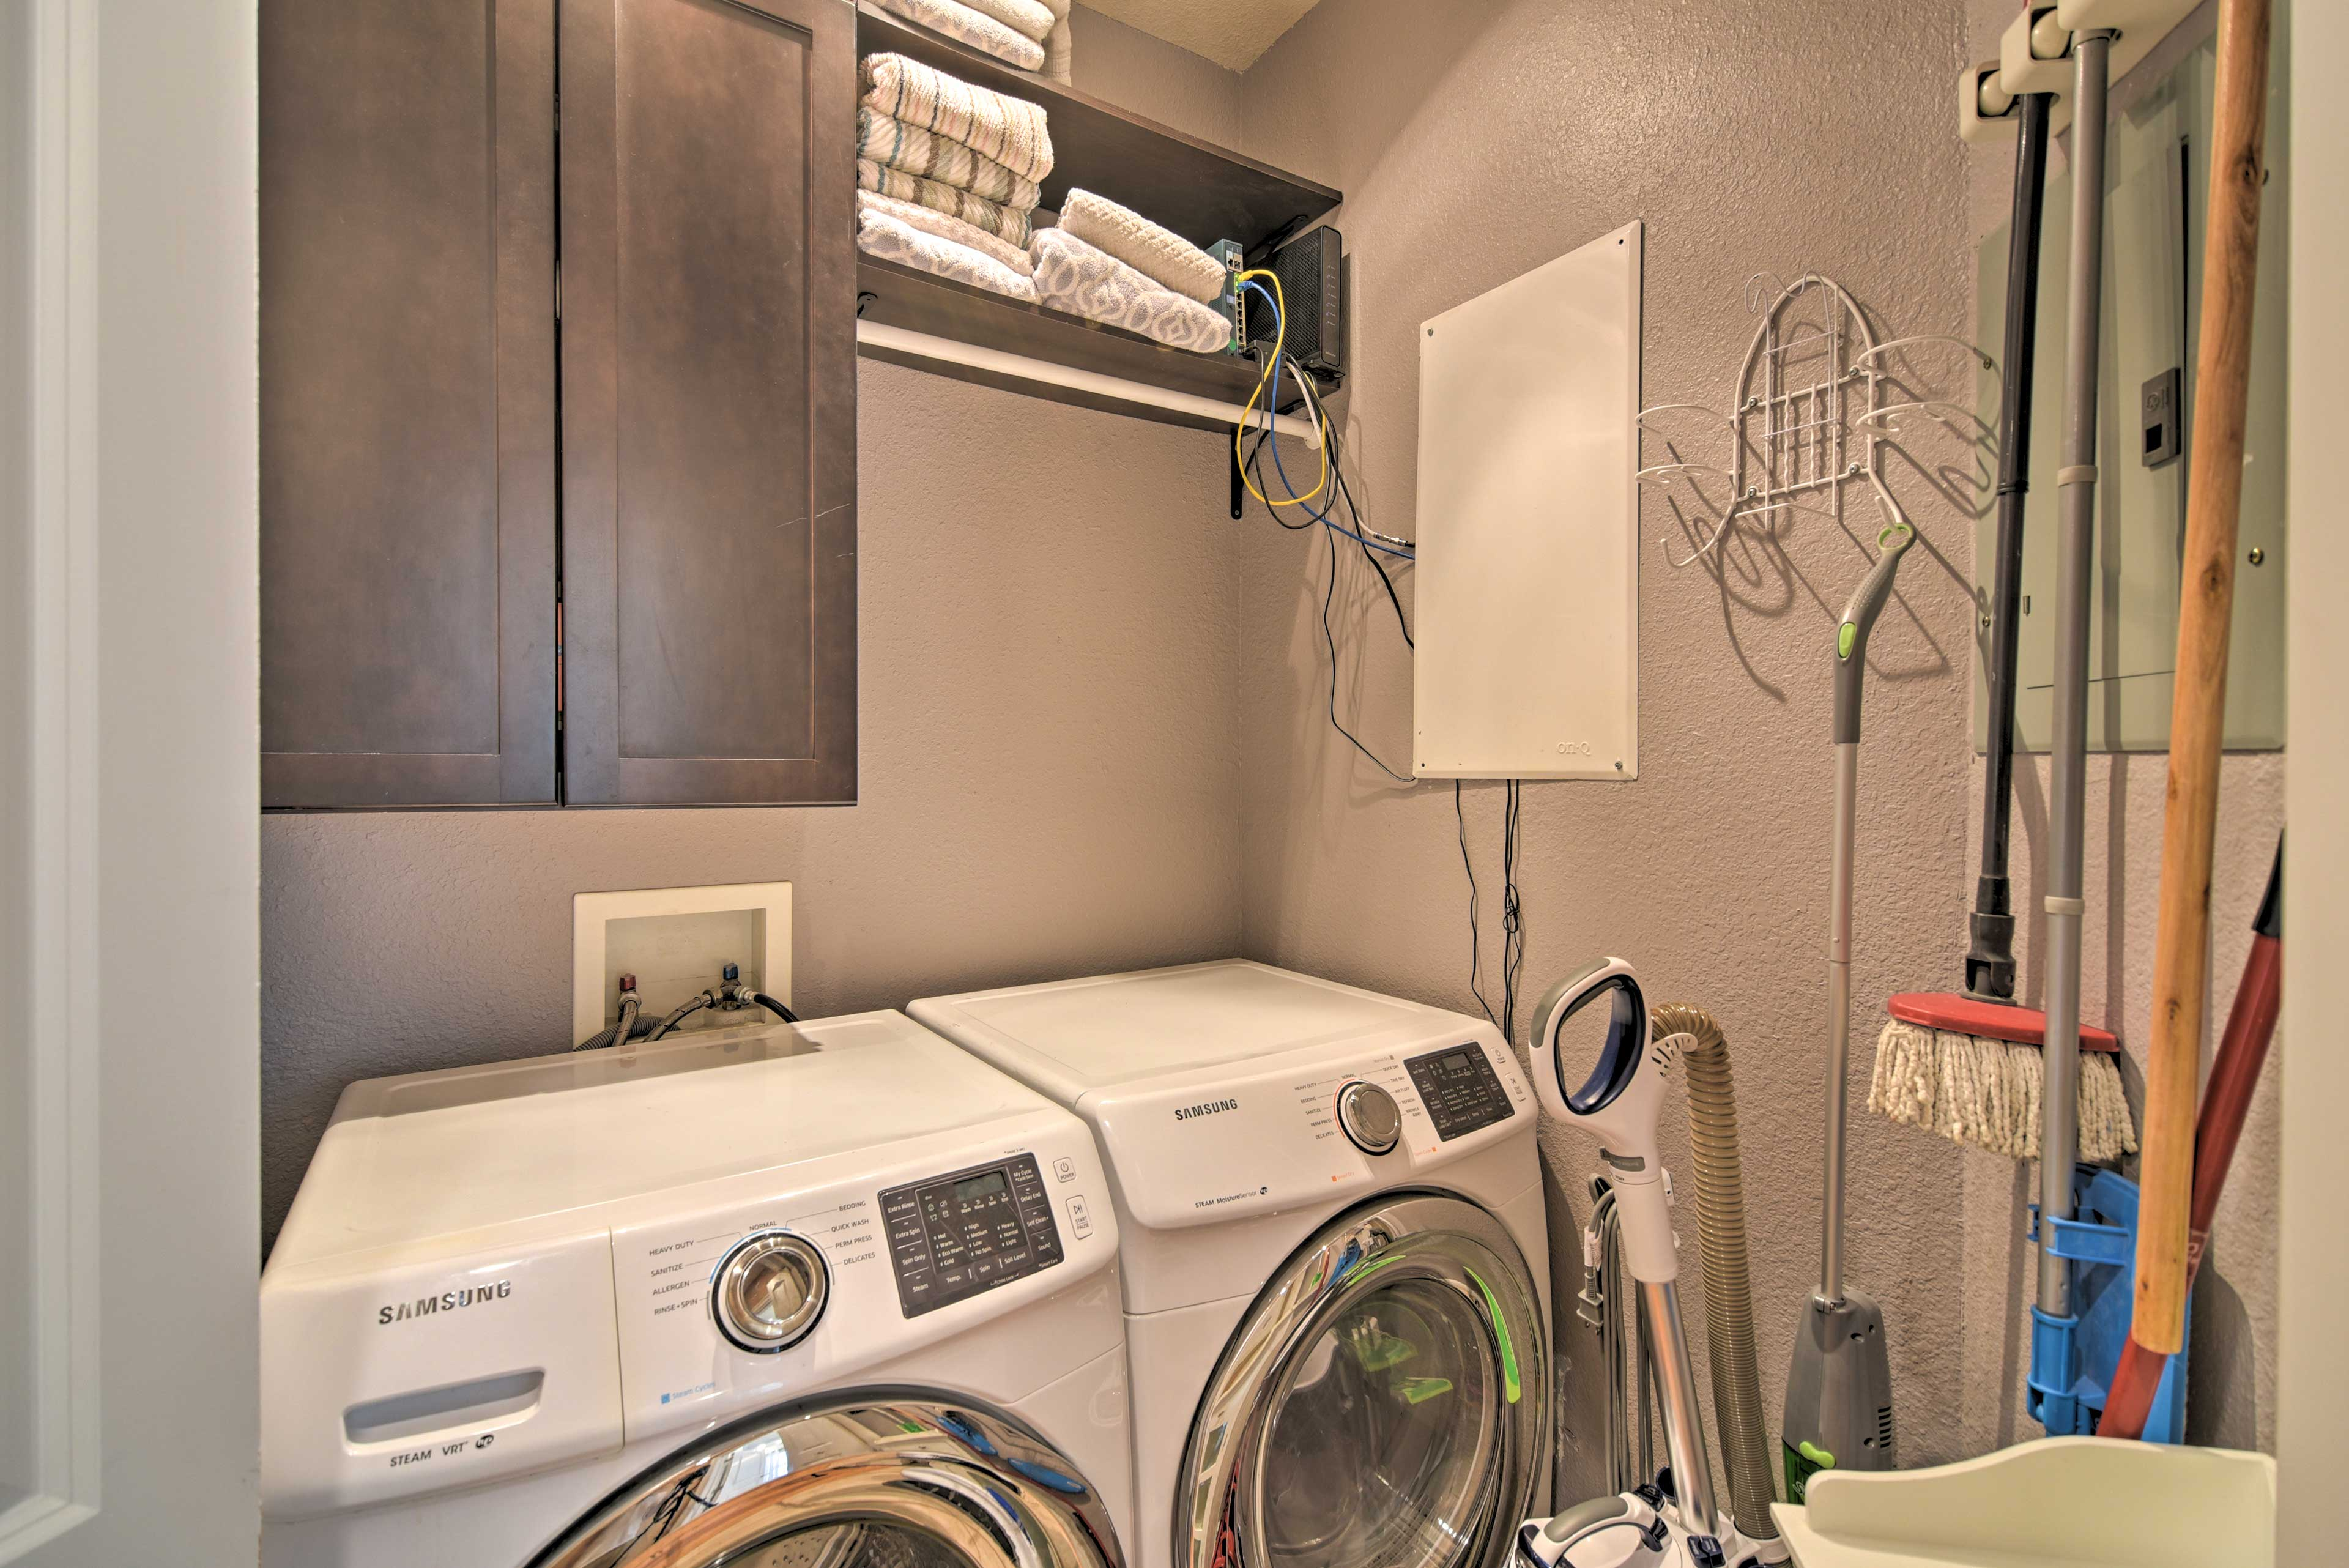 Toss your dirty clothes in the washing machine.